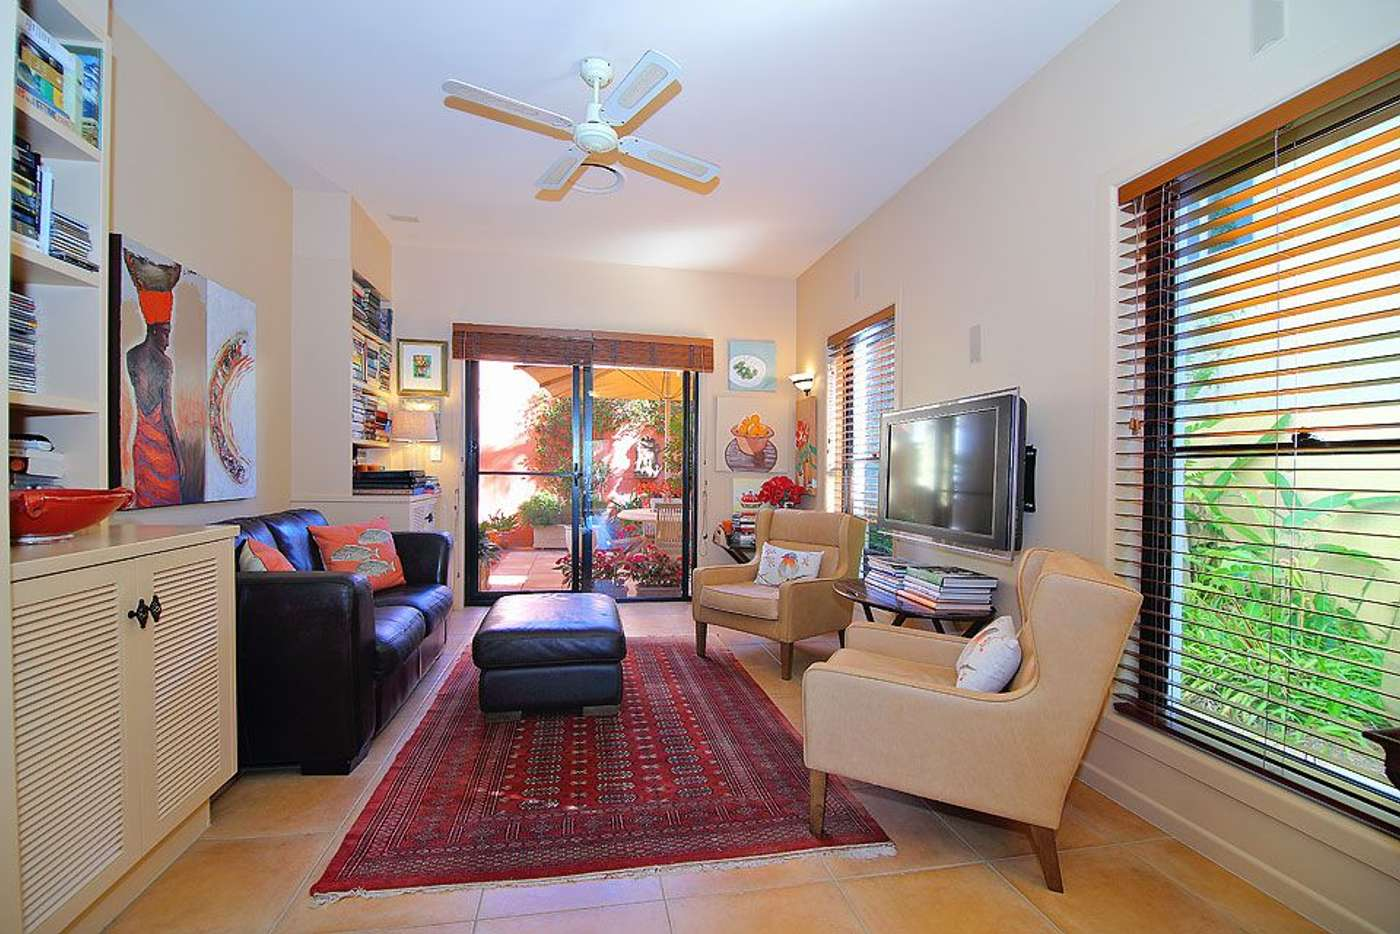 Fifth view of Homely house listing, 15 Nicklaus Court, Merrimac QLD 4226